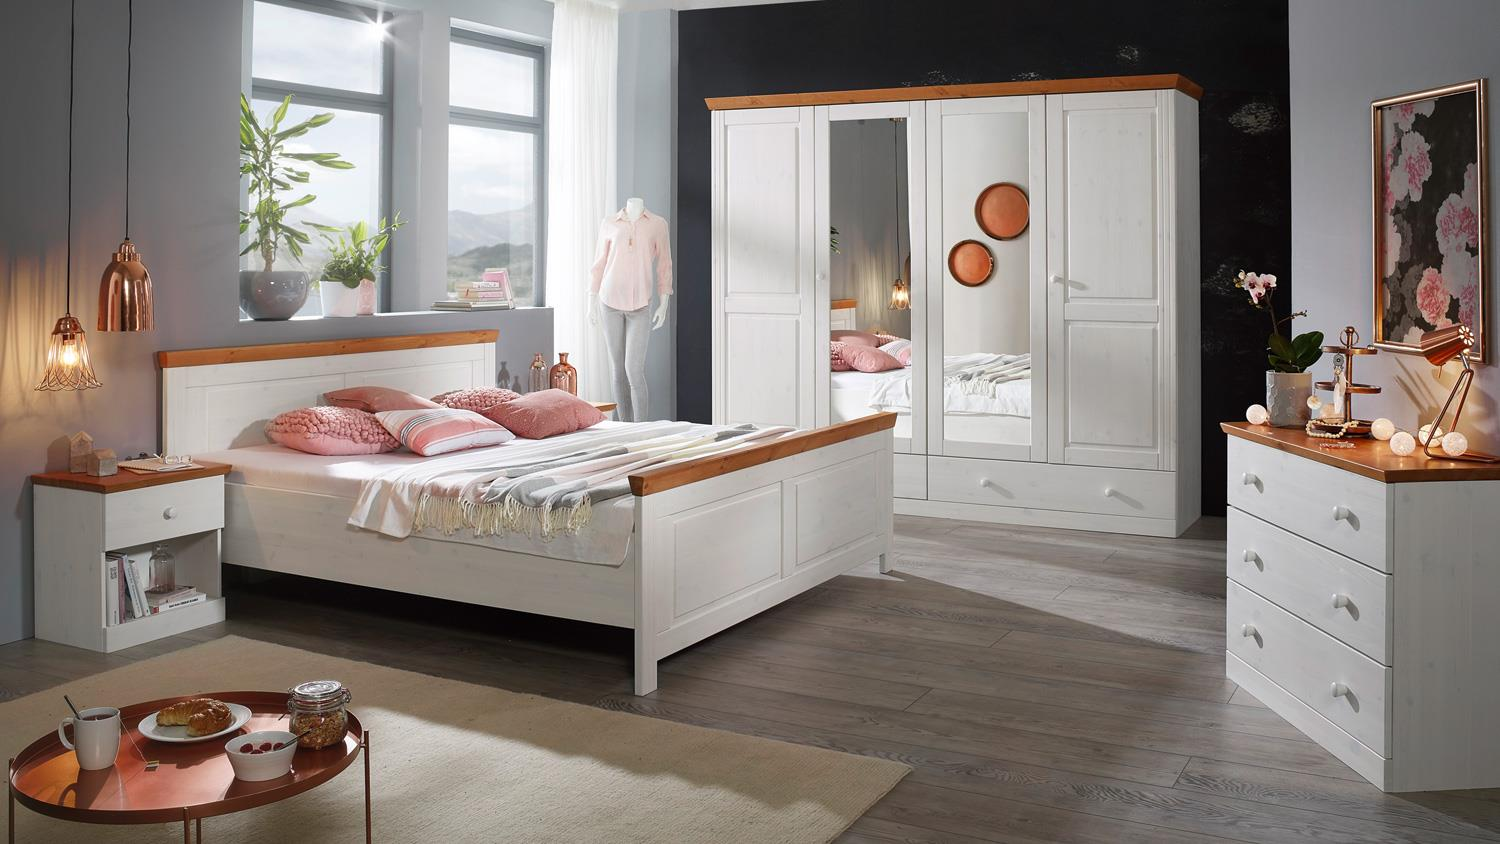 kommode genia kiefer massiv wei honig mit 3 schubk sten landhausstil. Black Bedroom Furniture Sets. Home Design Ideas